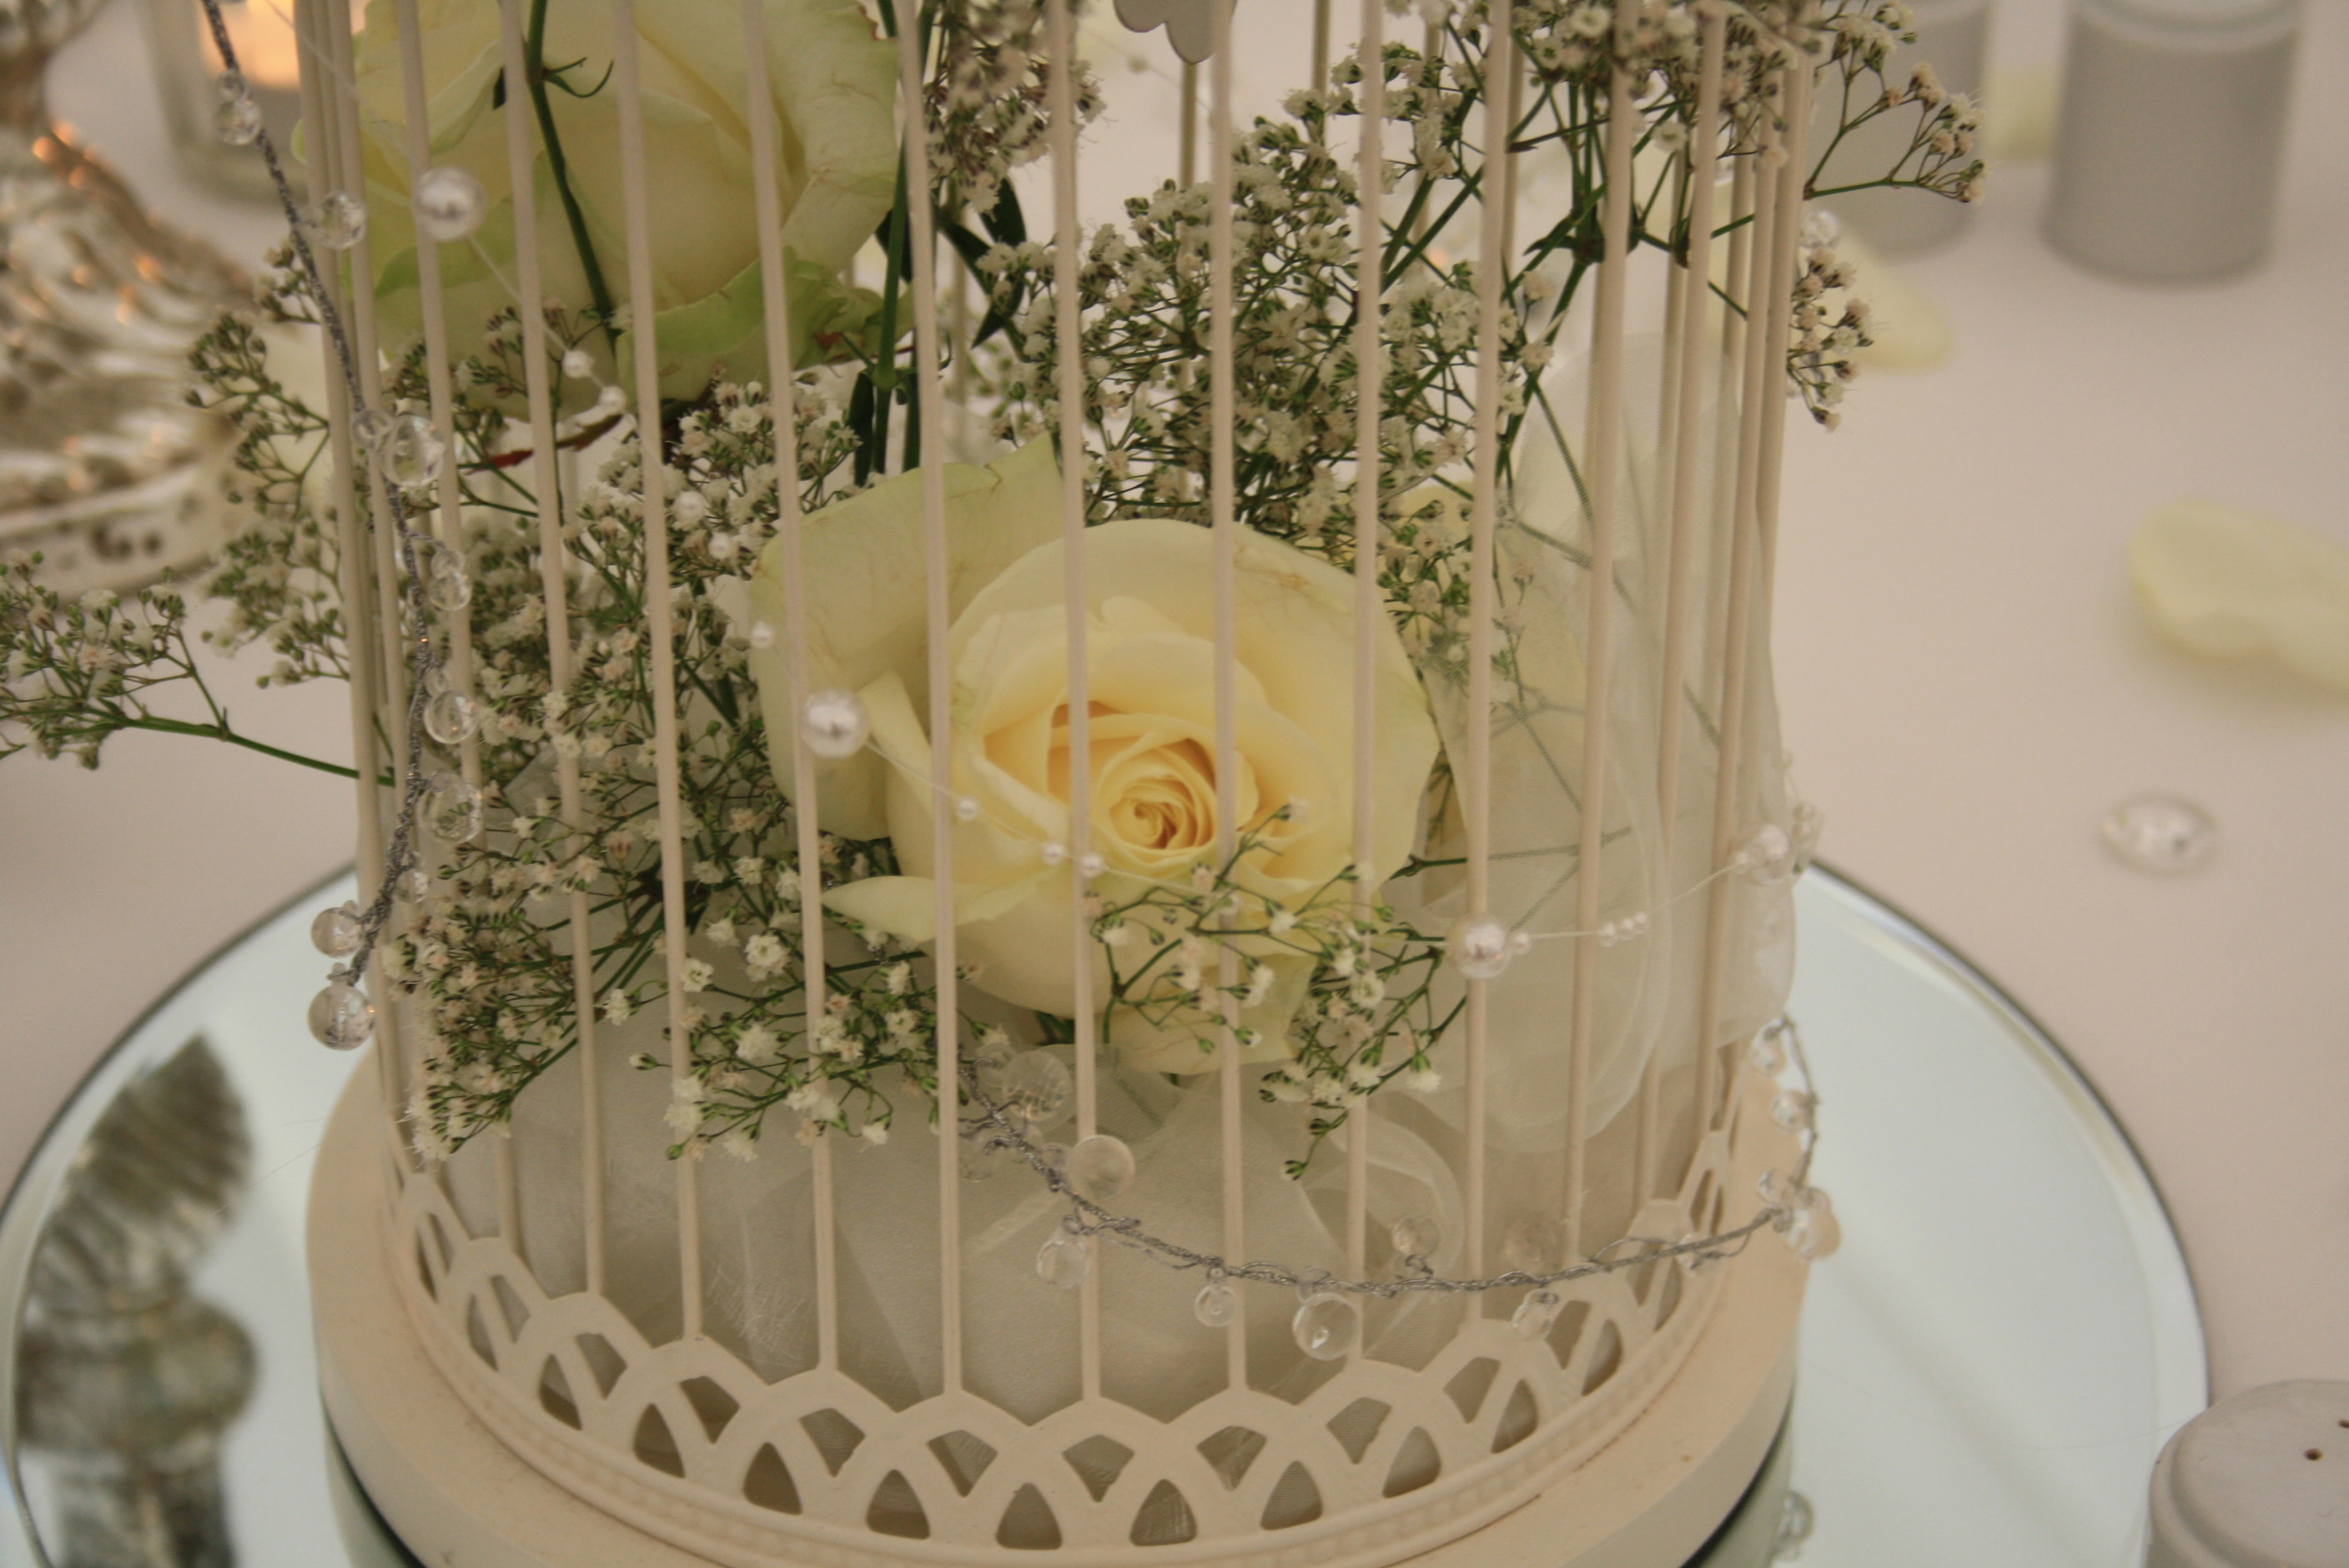 bird cages for flowers – Your local florist with locations in West